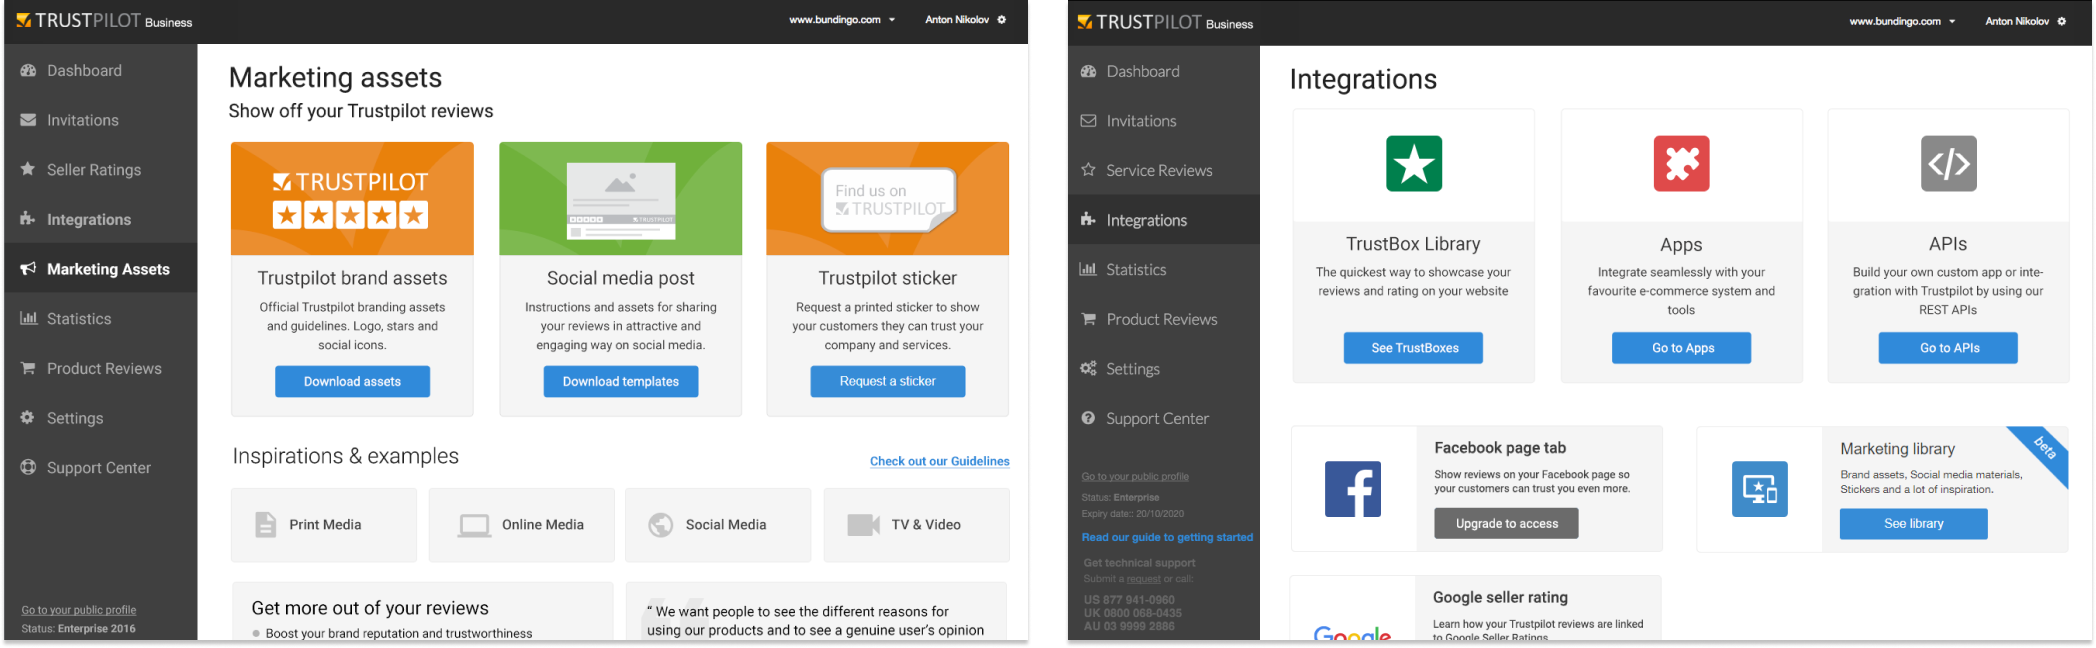 Marketing library and new integrations page to support customers marketing activity.